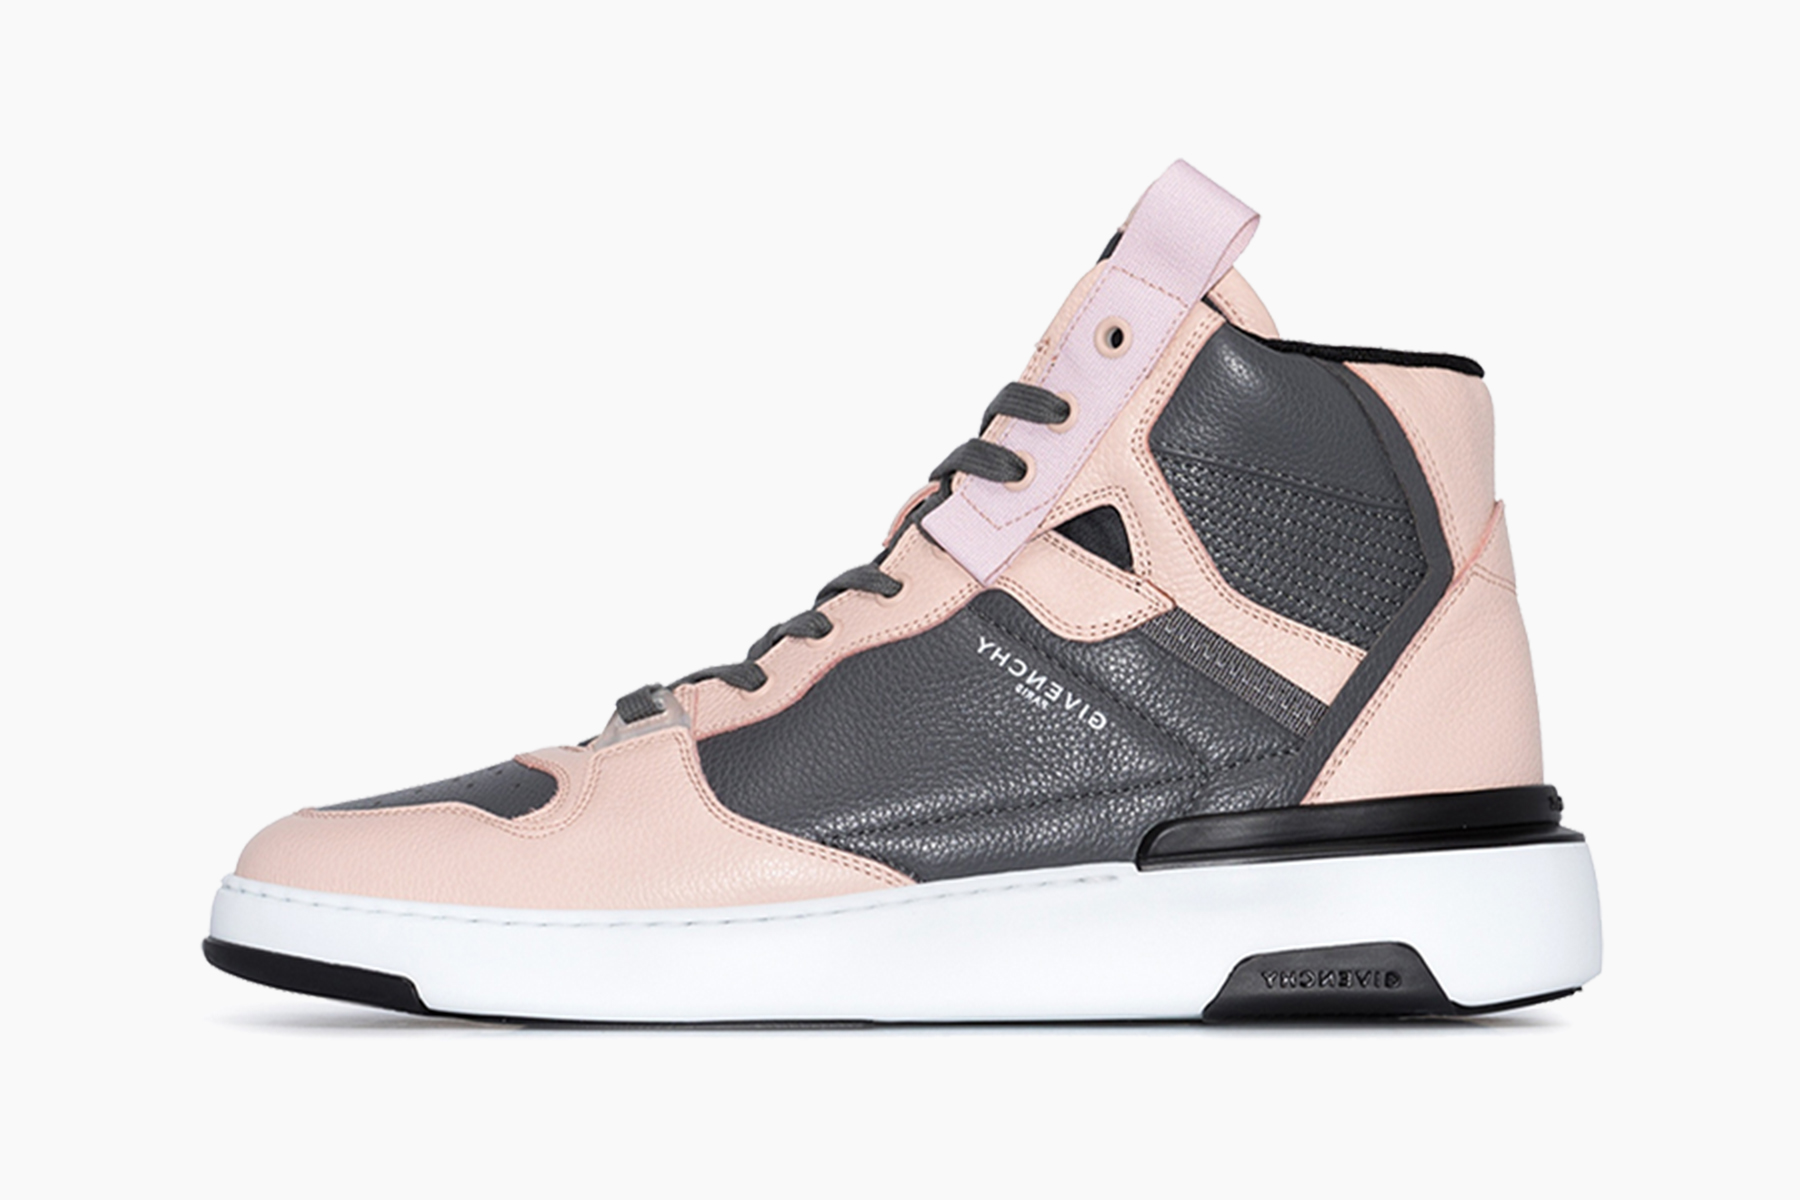 Givenchy Wing Leather High Top Sneakers